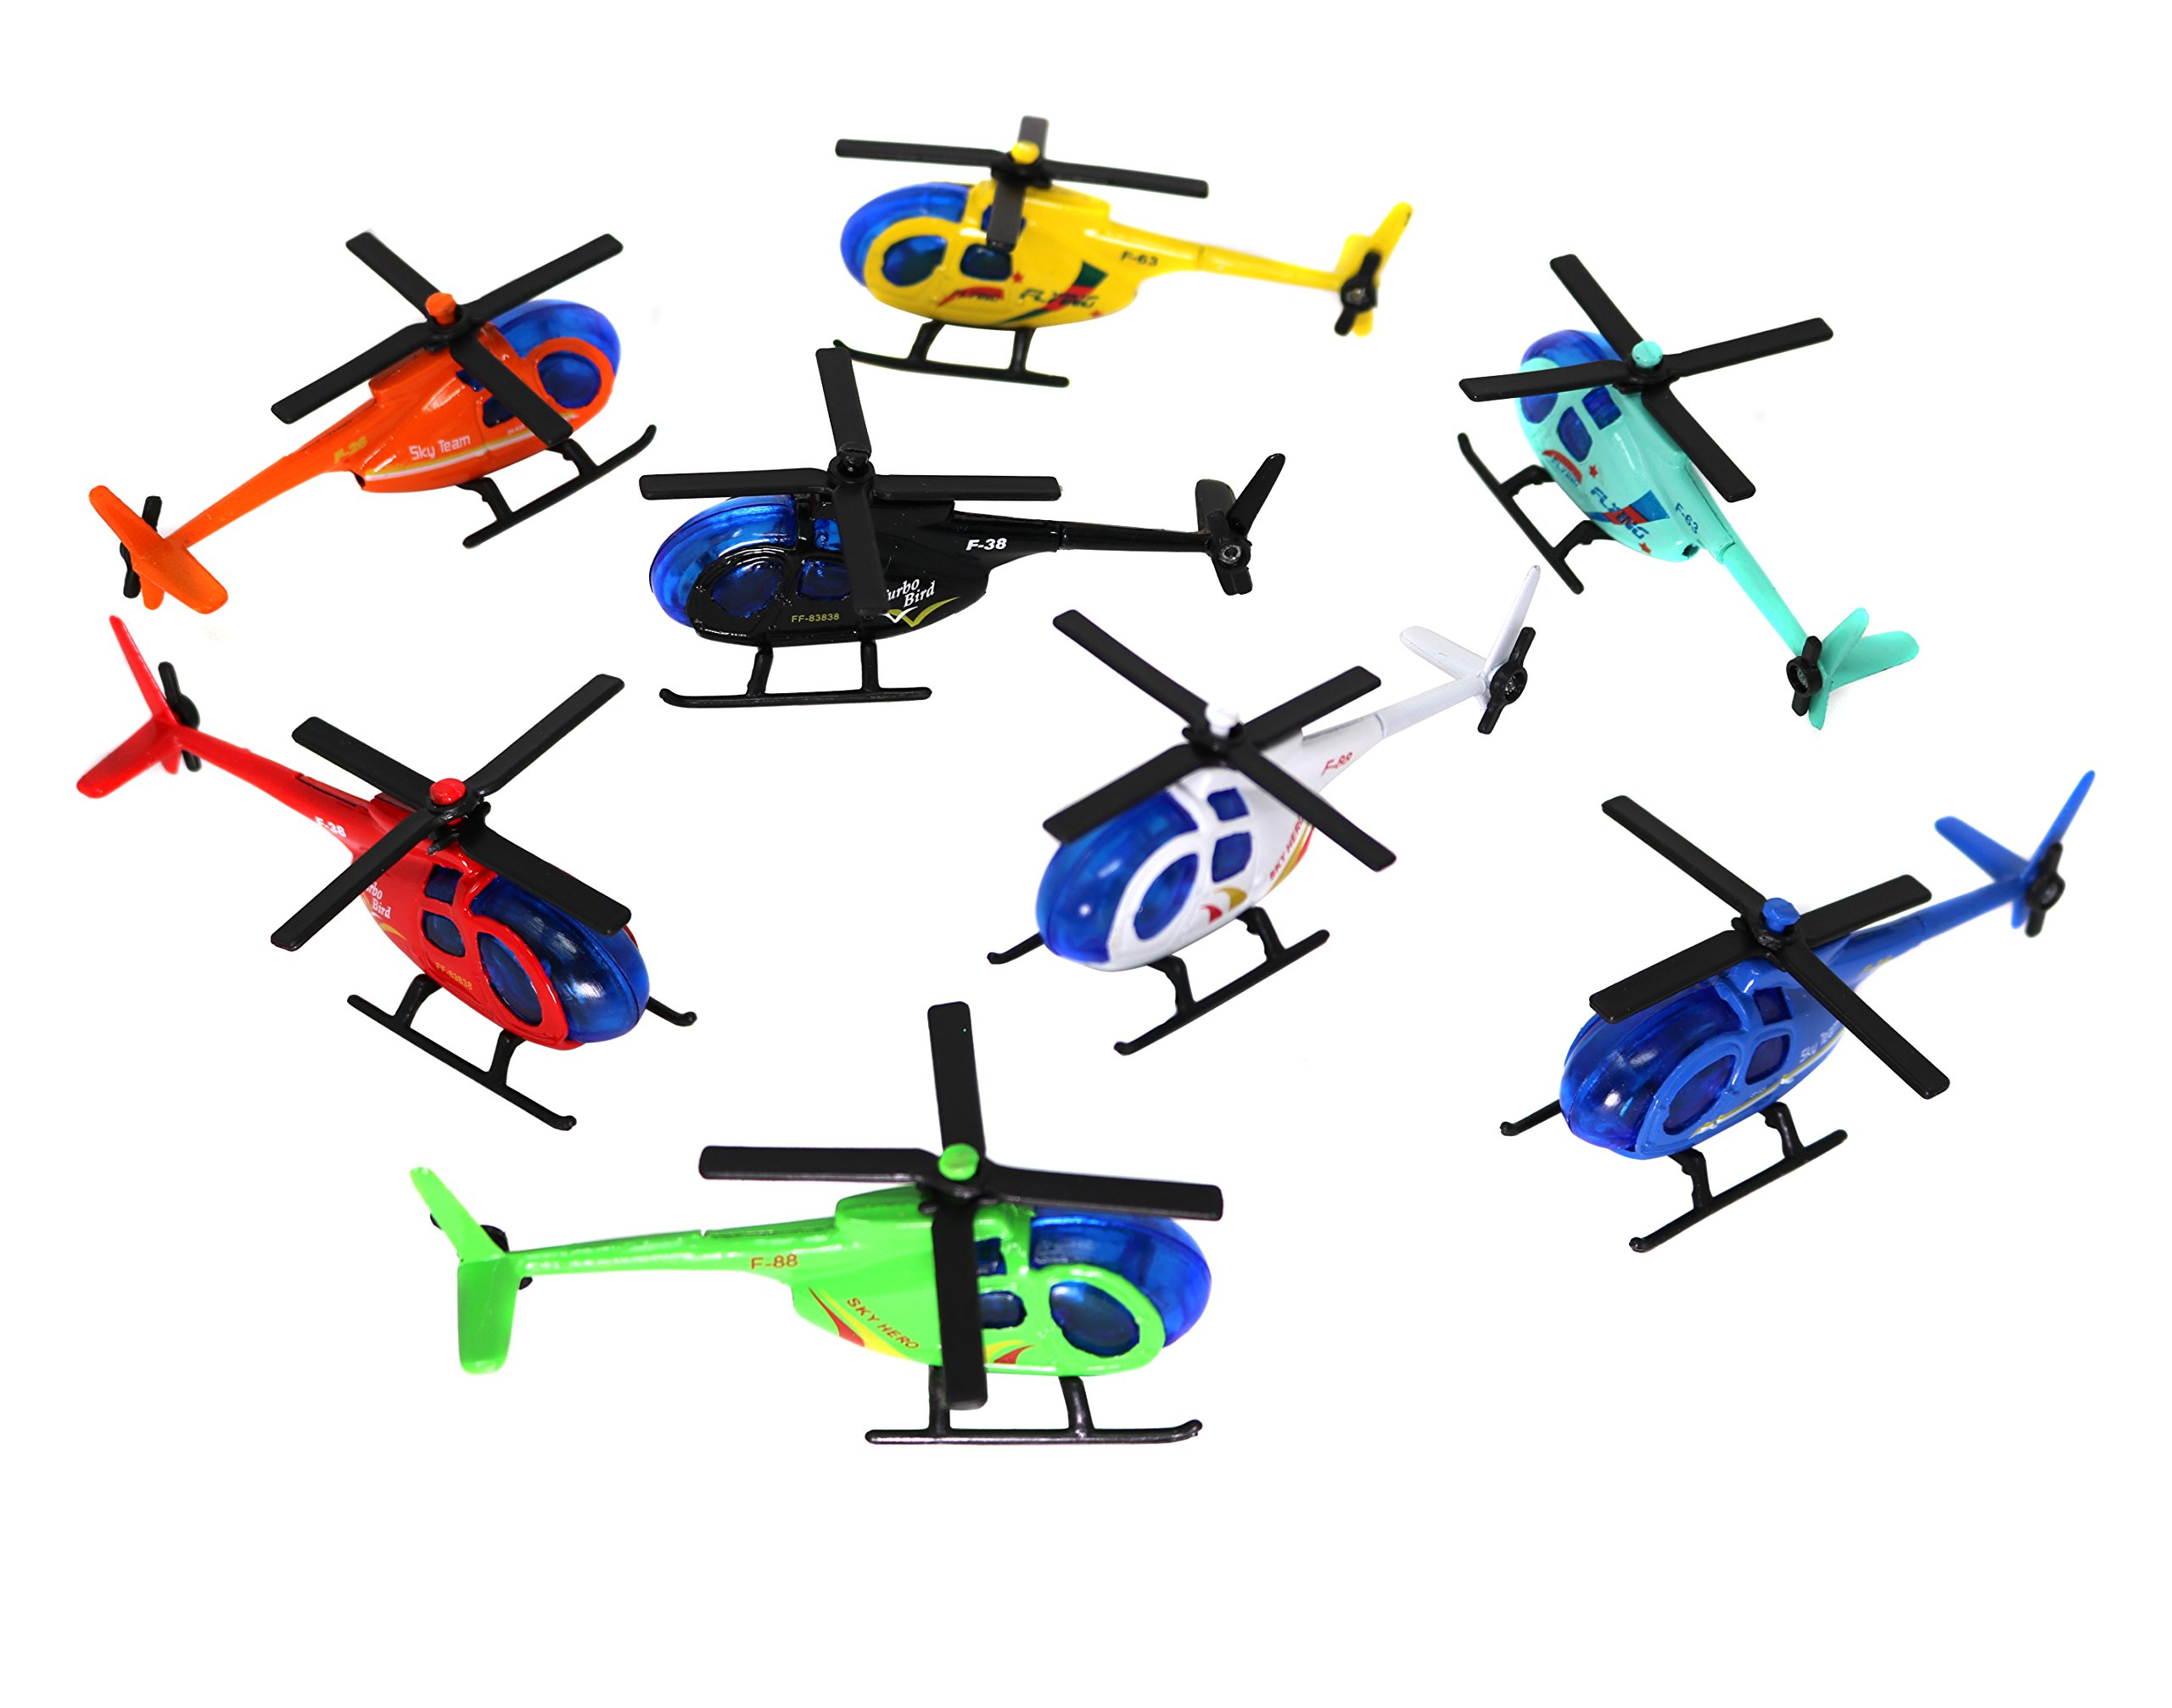 Smart Novelty Die Cast Metal Helicopters In Assorted Colors - Set Of 6 Helicopters